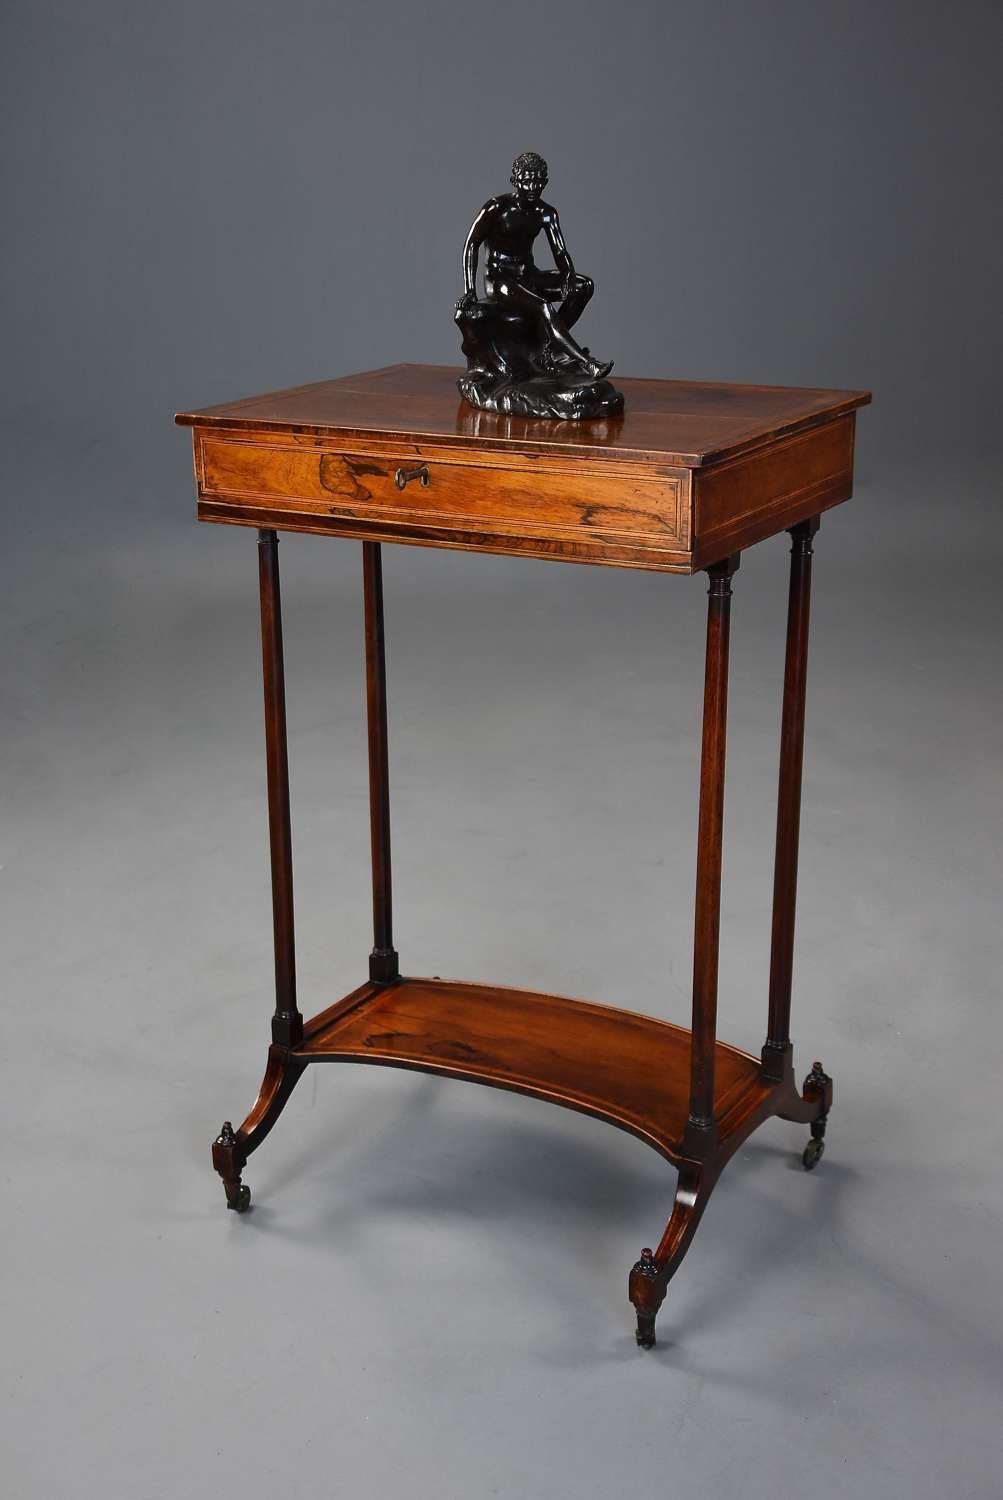 Elegant late 18th century Sheraton period rosewood occasional table